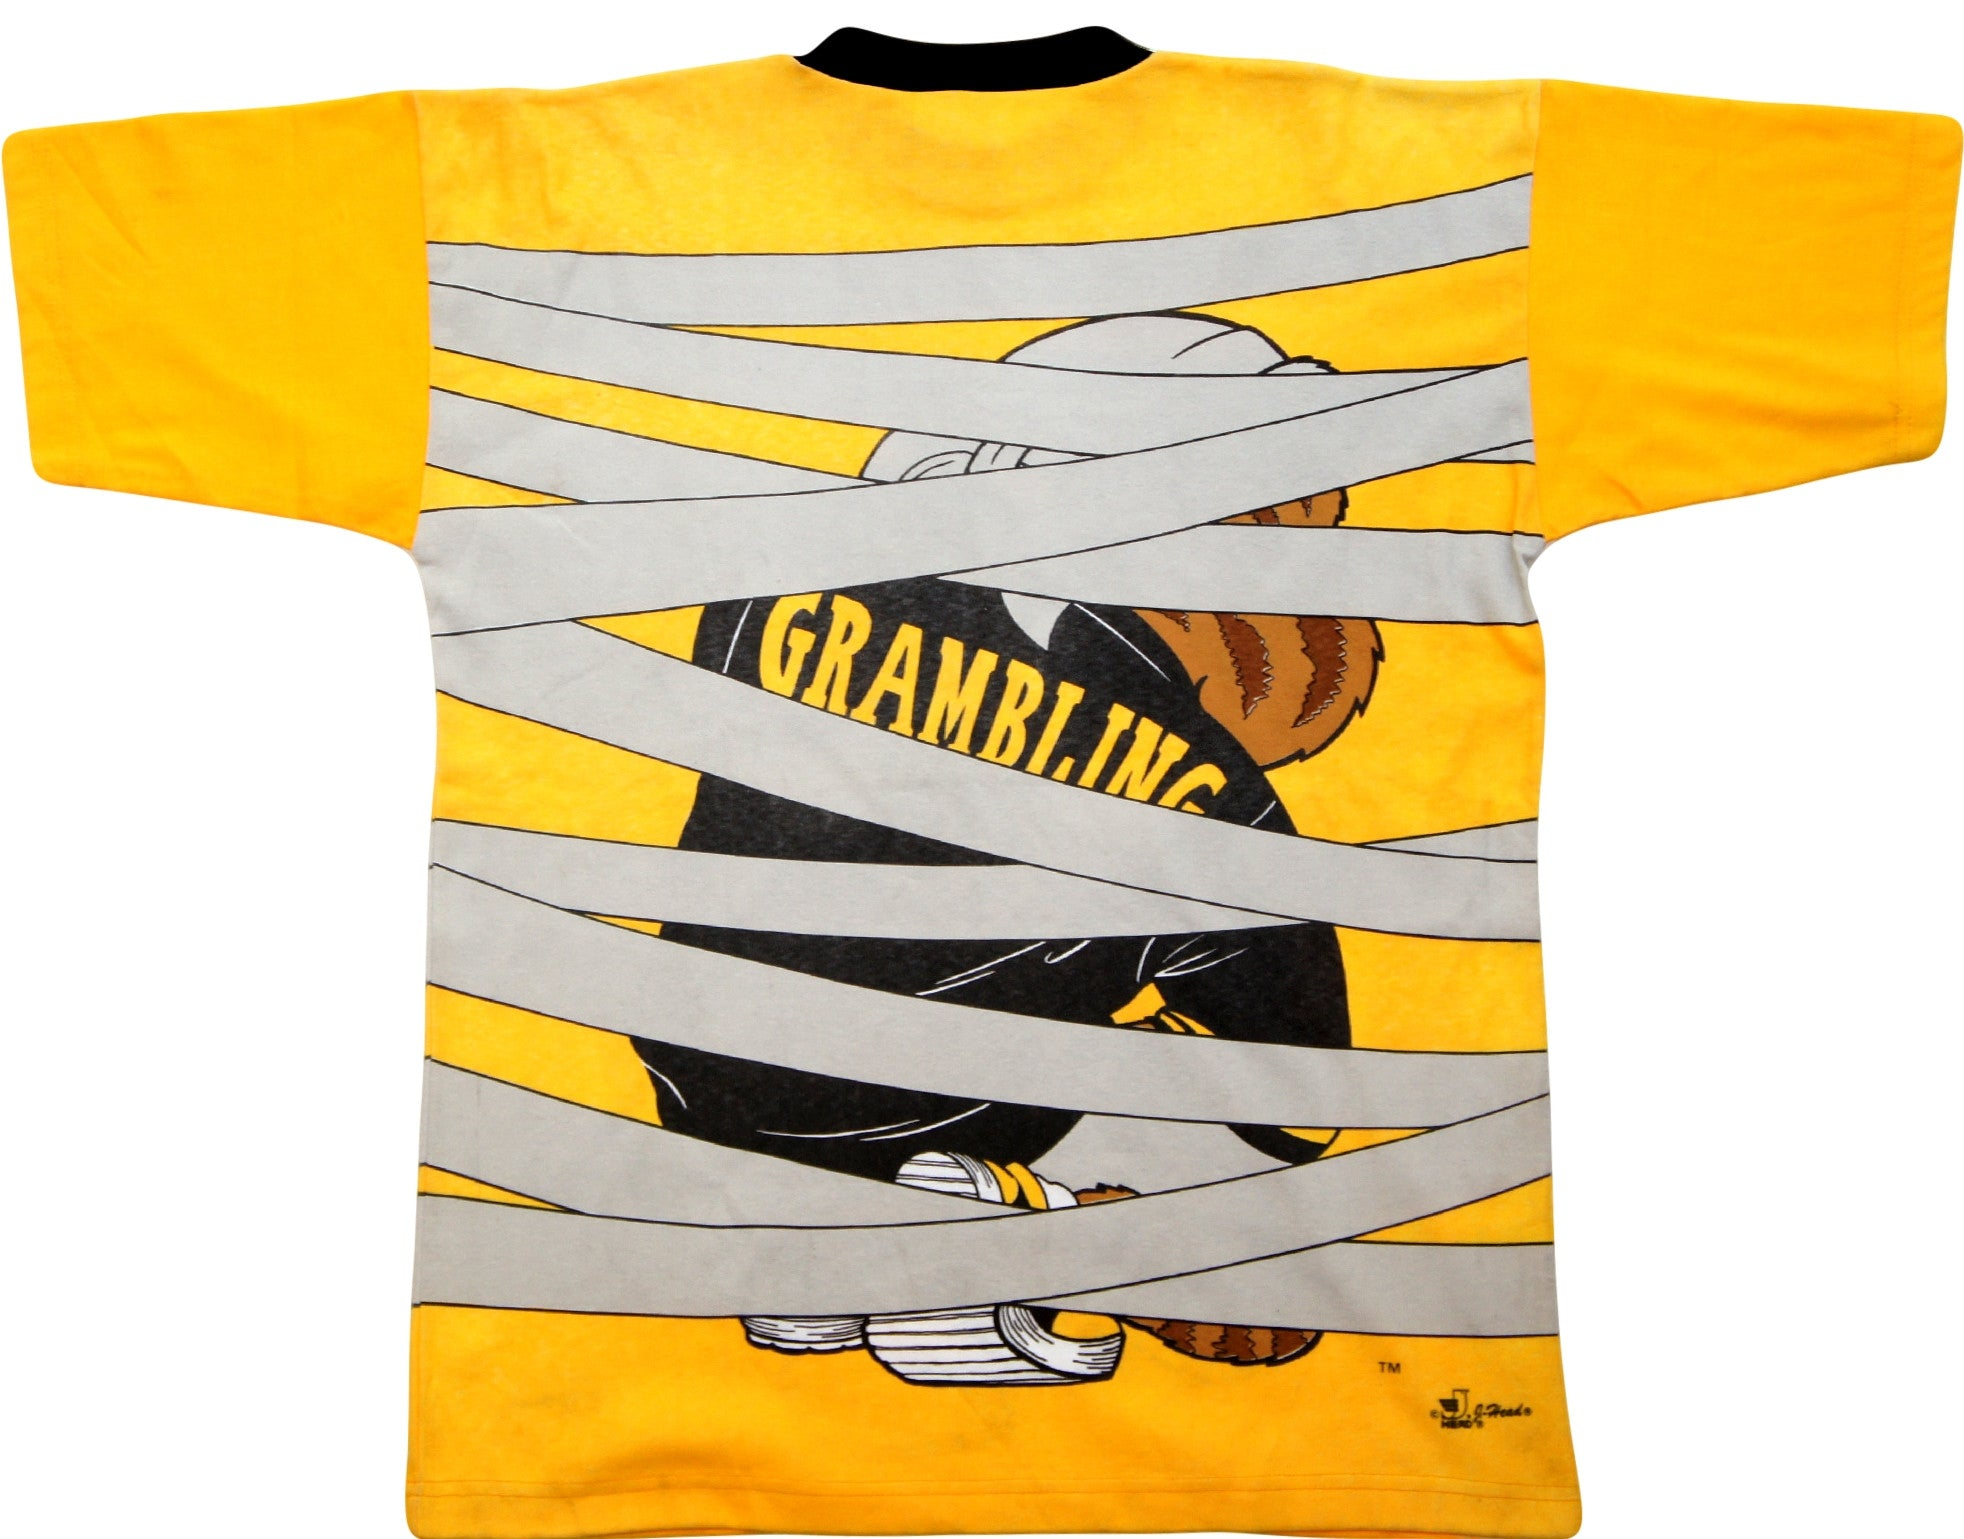 Grambling Tigers Vintage Shirt - And Still